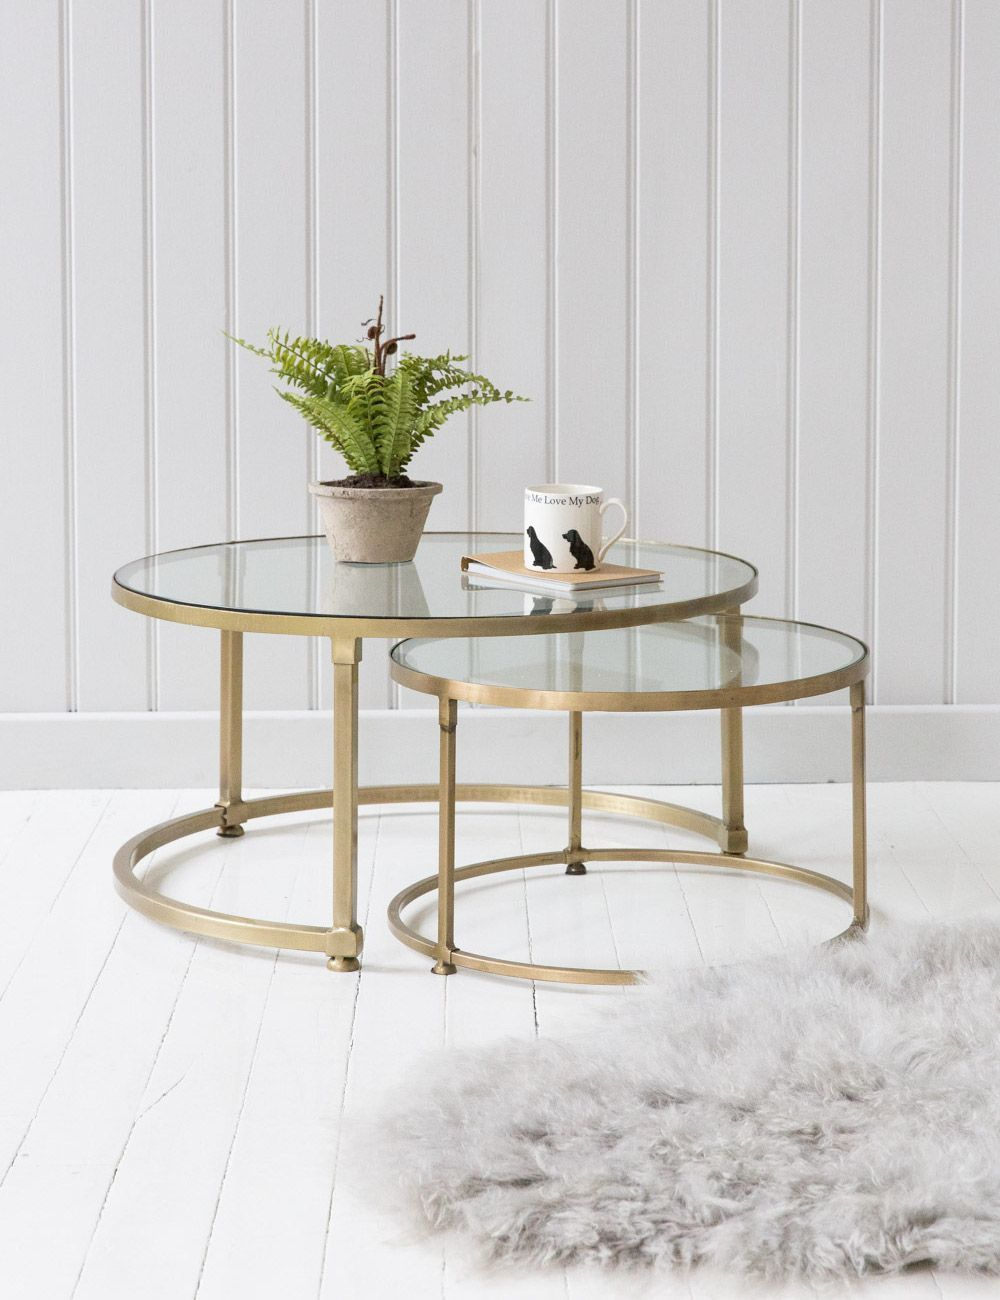 Pin On Round Coffee Tables Ideas [ 1300 x 1000 Pixel ]